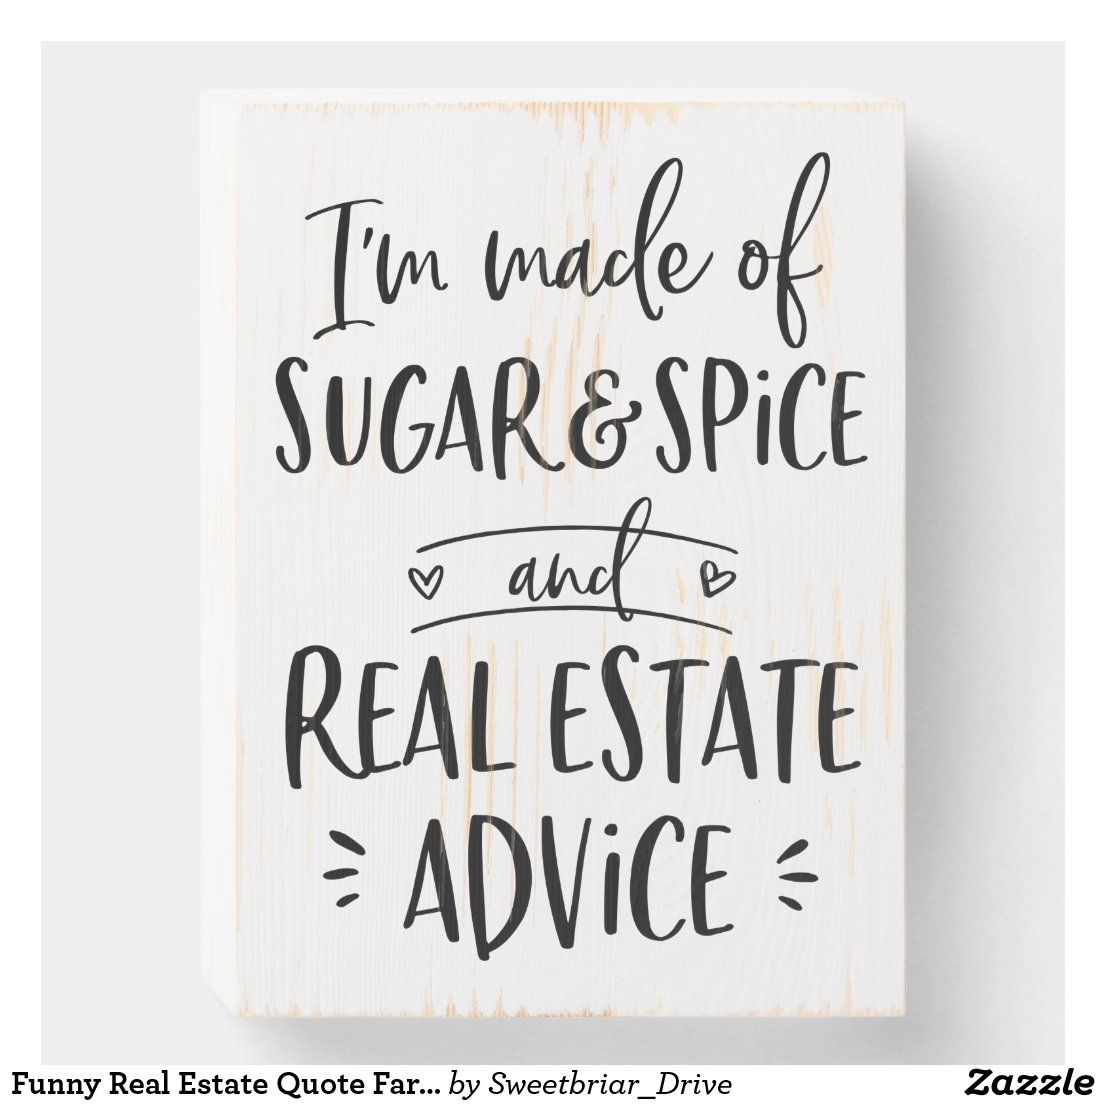 Funny Real Estate Quote Farmhouse Distressed Decor Wooden Box Sign Zazzle Com In 2020 Real Estate Quotes Real Estate Humor Real Estate Fun